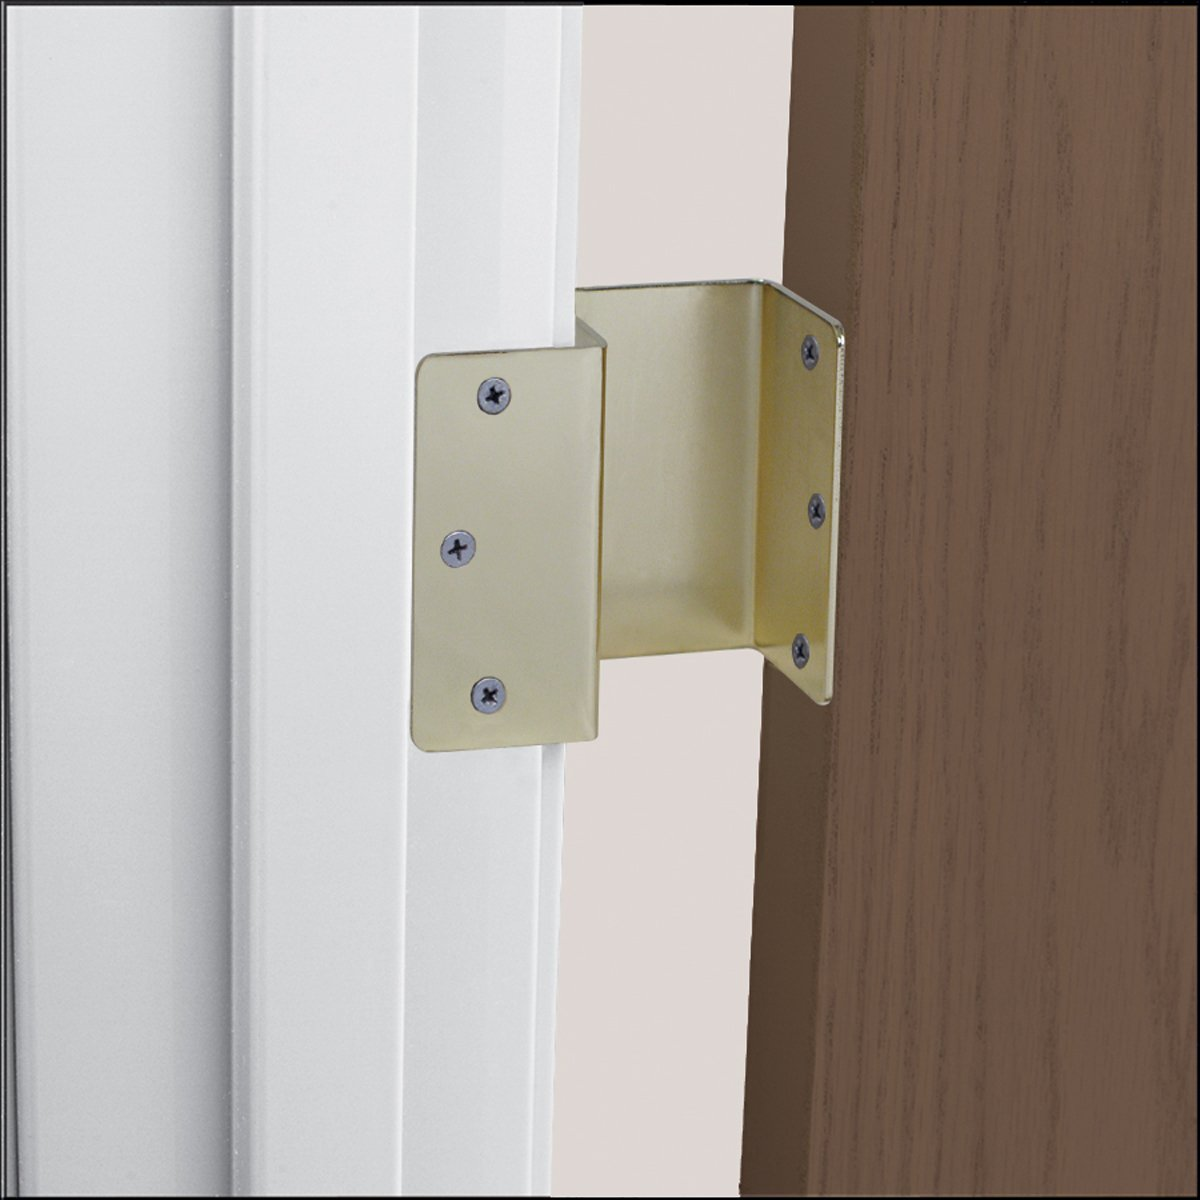 accessible home: threshold hinges